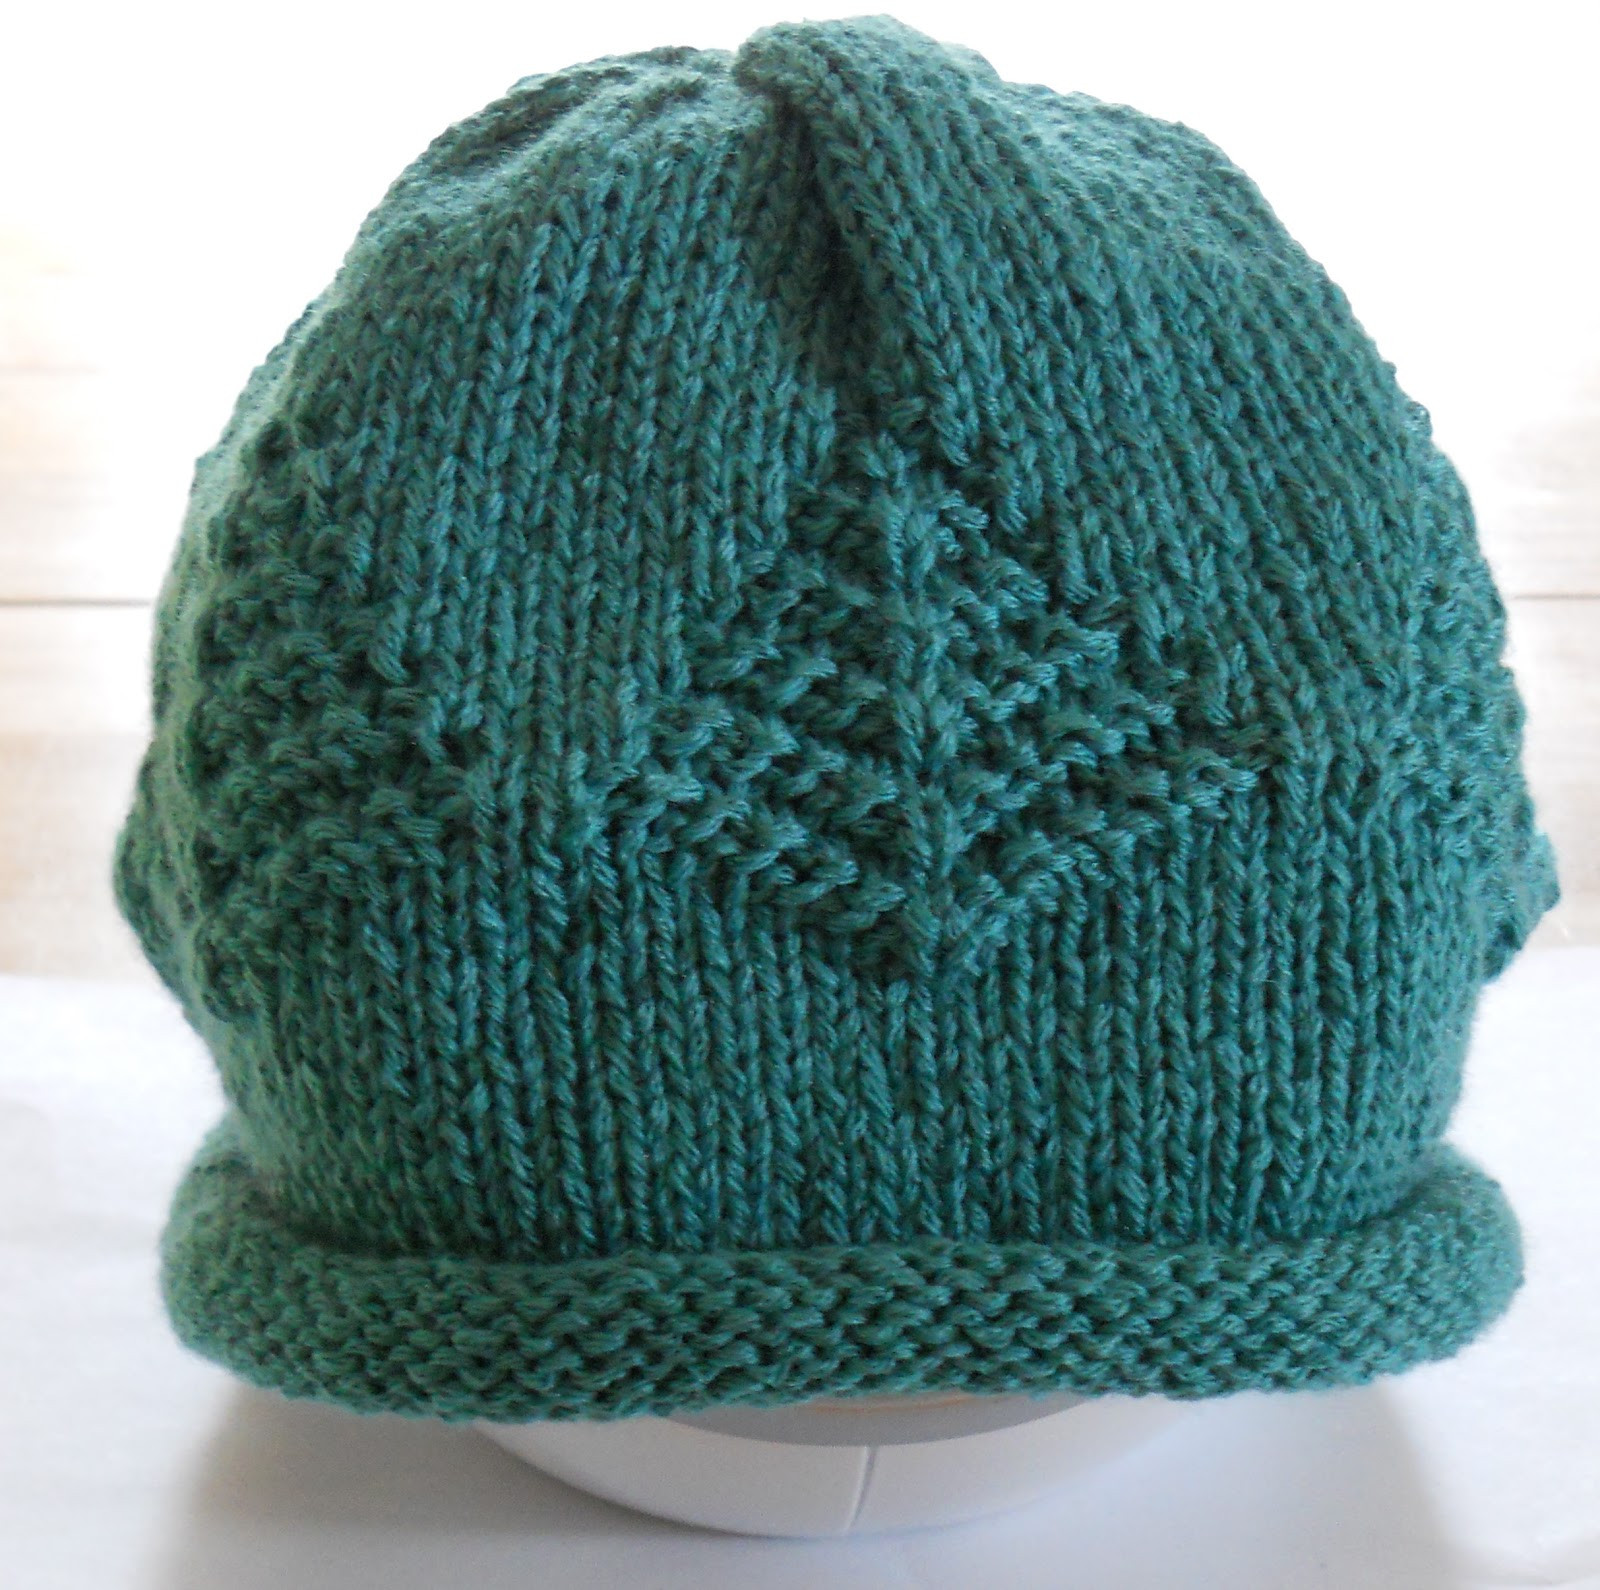 Knitting with Schnapps Introducing The Giving Tree Chemo Cap